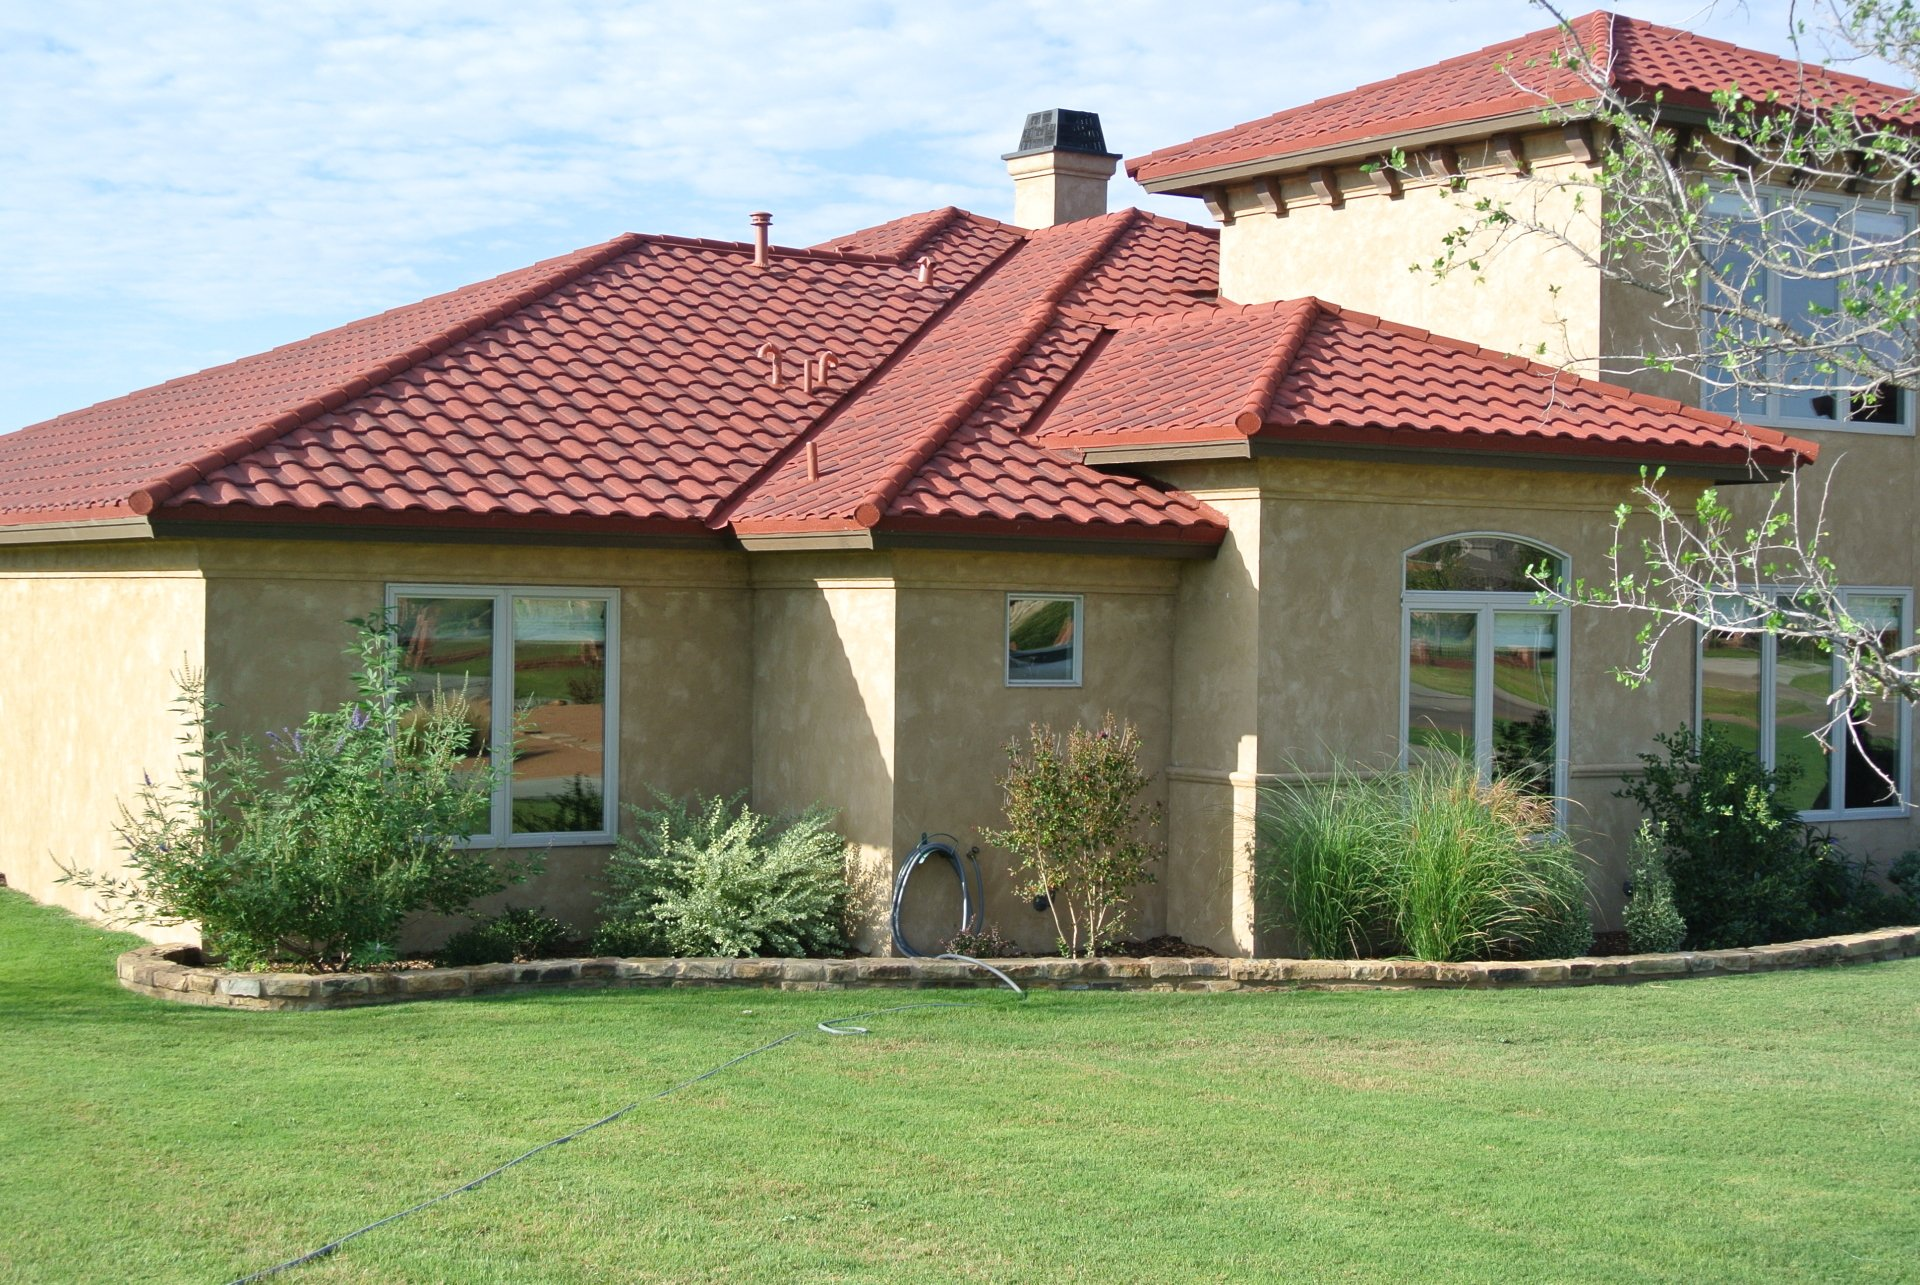 Home Roofing Contractor Watson Roofing Brownwood Tx